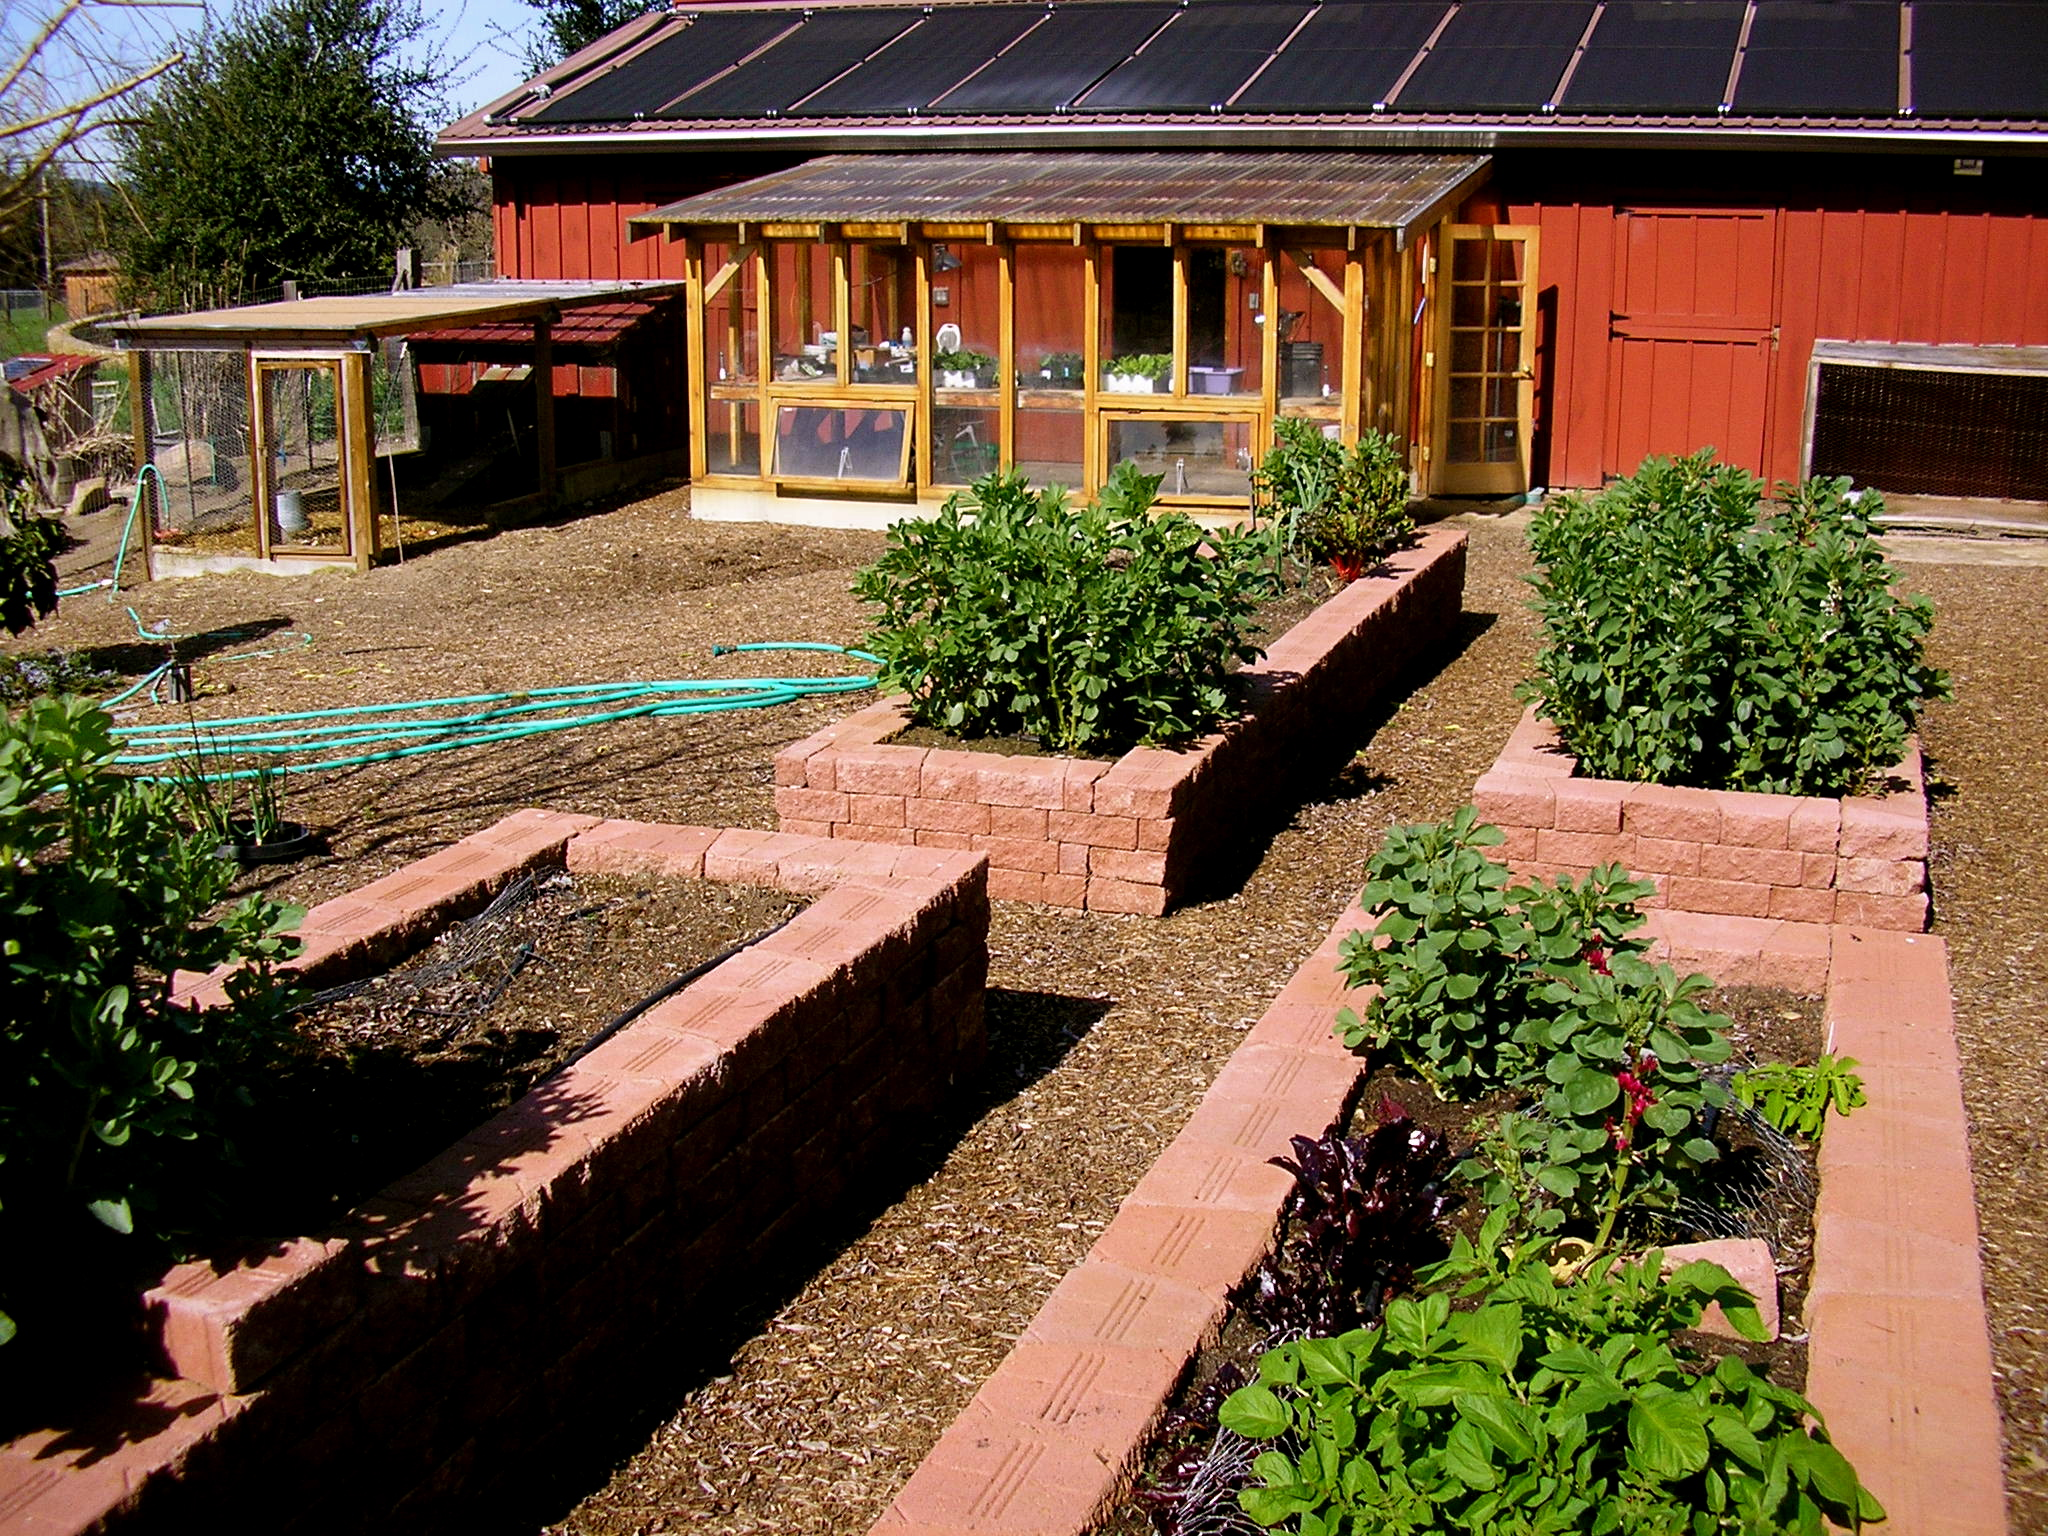 Here are the barn veggies at Rancho Pillow with the greenhouse and the chicken coop in the background.